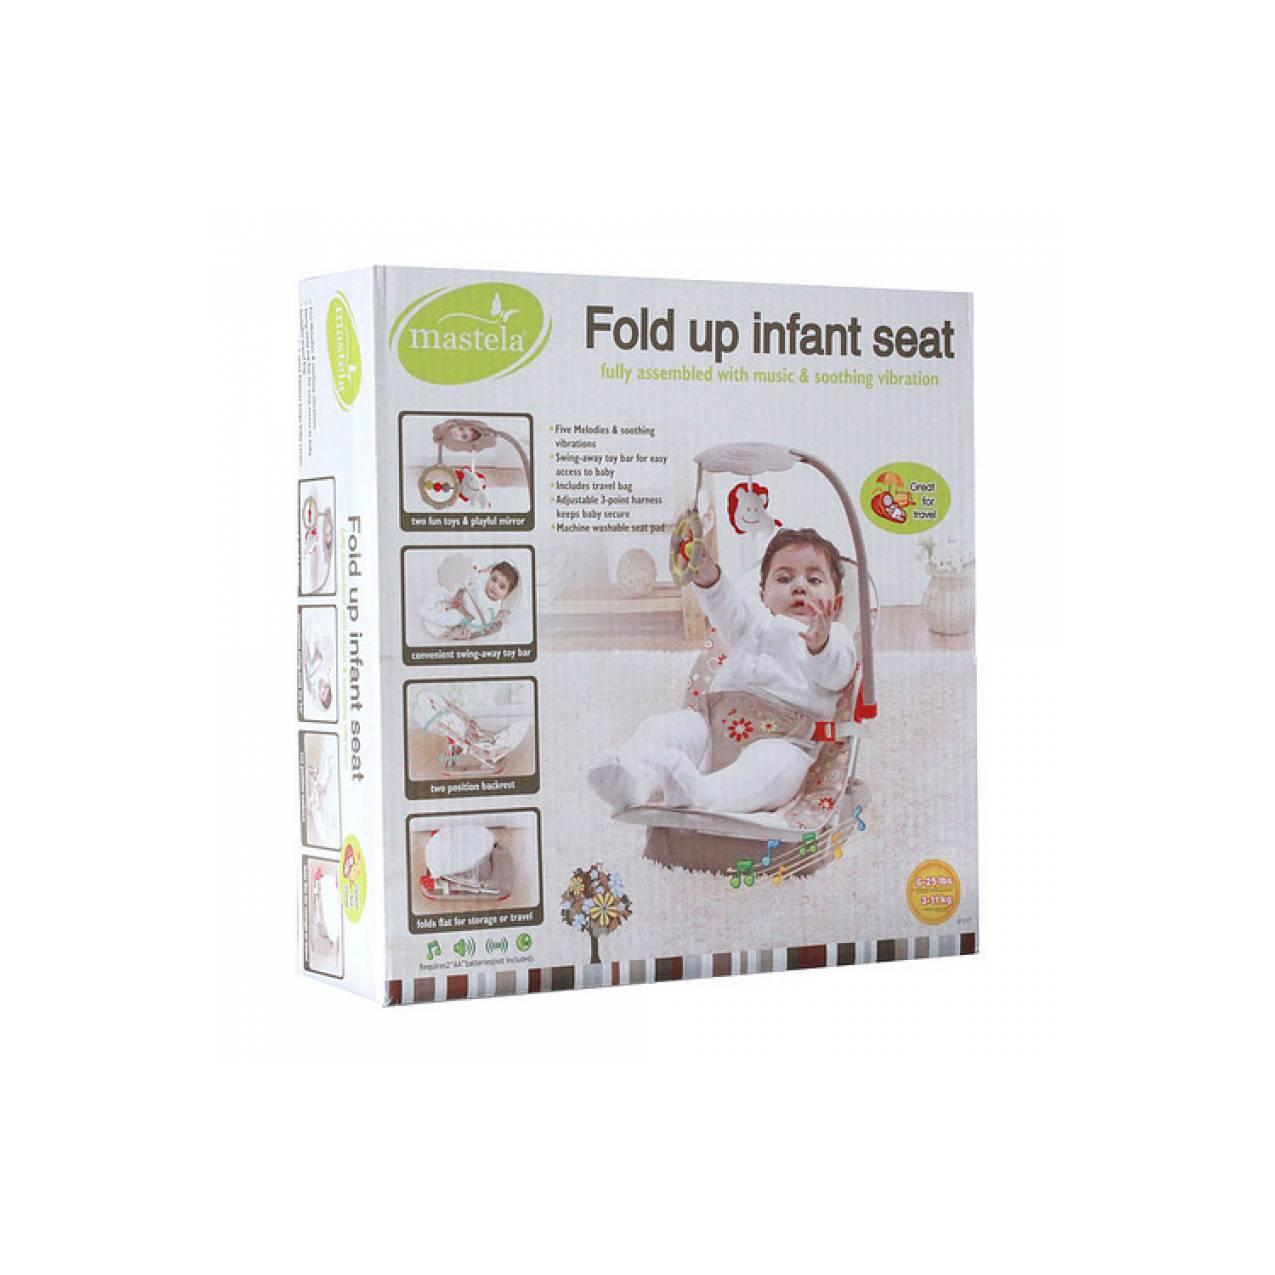 Mastela Fold Up Infant Seat / Kursi Bayi / Bouncer Bayi / Kursi Makan